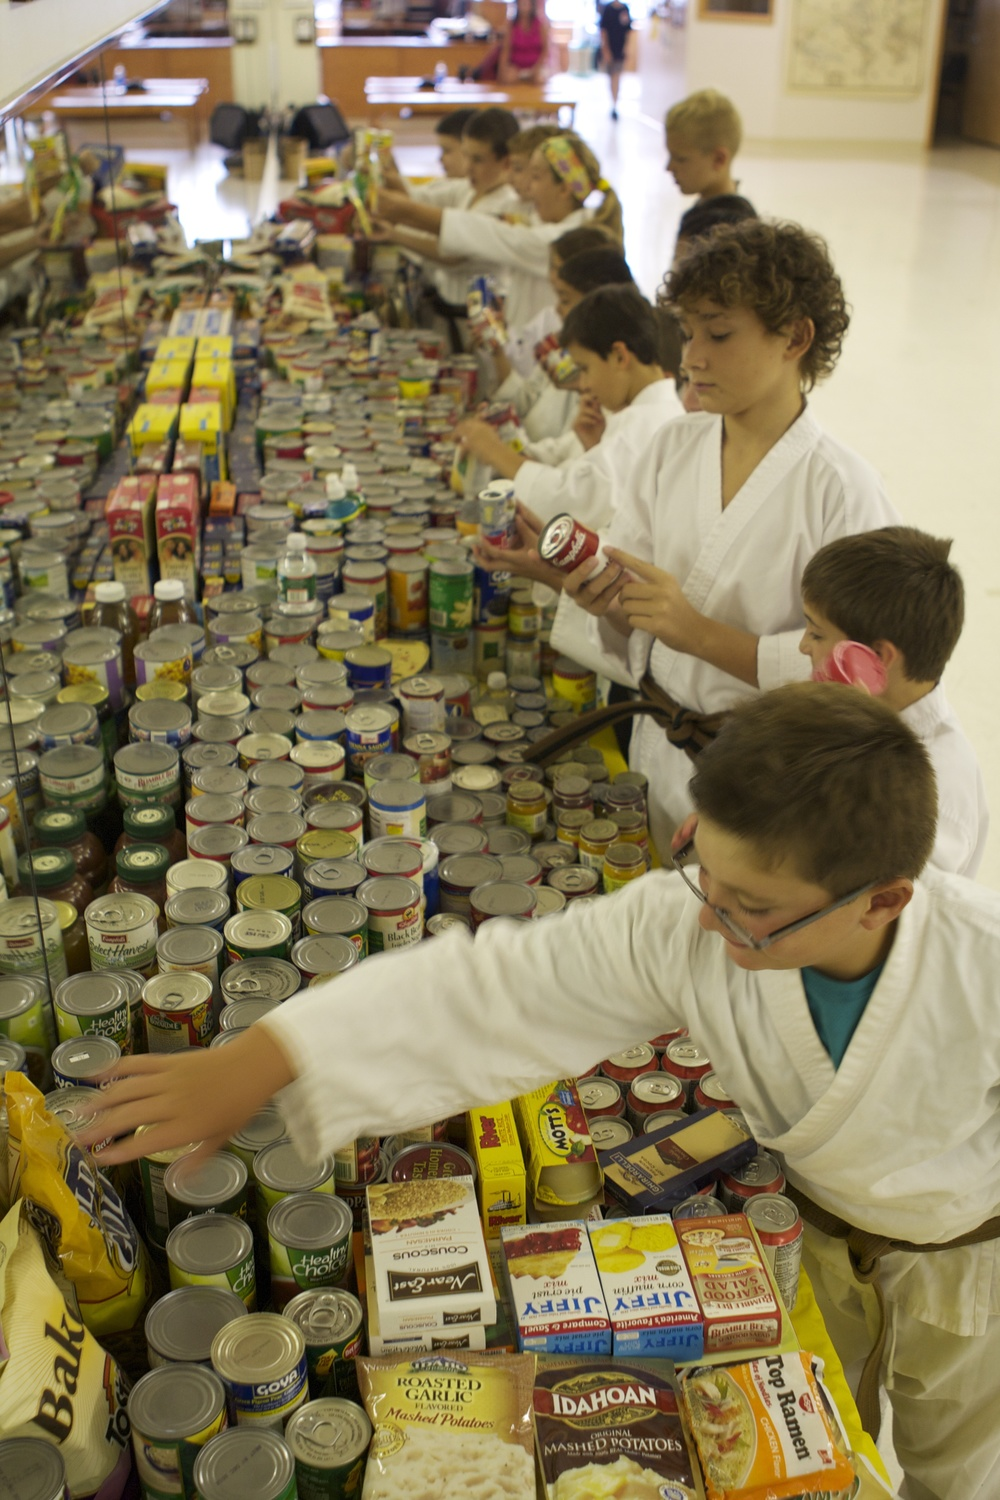 thedojo-food-drive-martial-arts-karate-kids-doing-community-service-in-rutherford-nj_14484432900_o.jpg